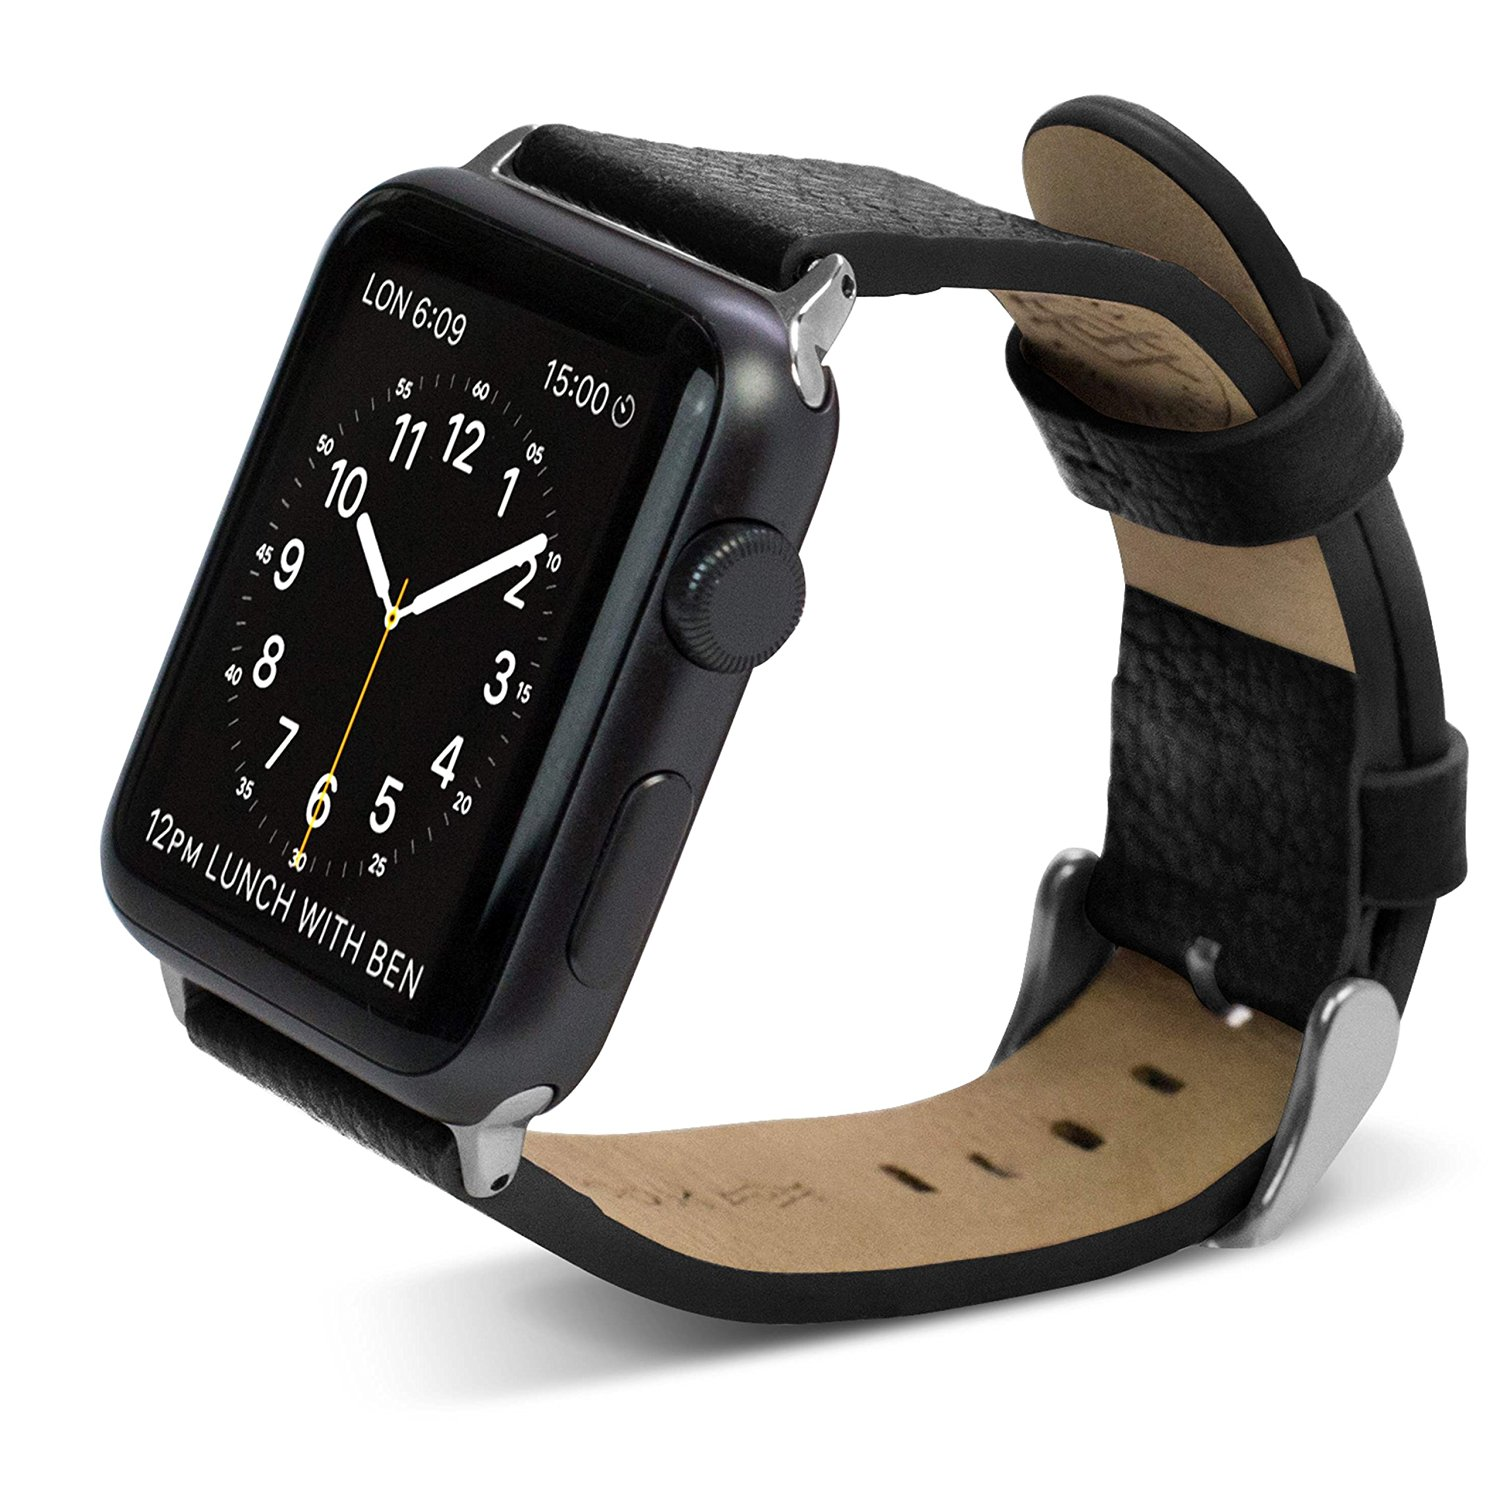 38mm Apple Watch Repalcement Band, X-Doria Lux Band, Genuine Leather, Black Leather for Apple Watch All Models